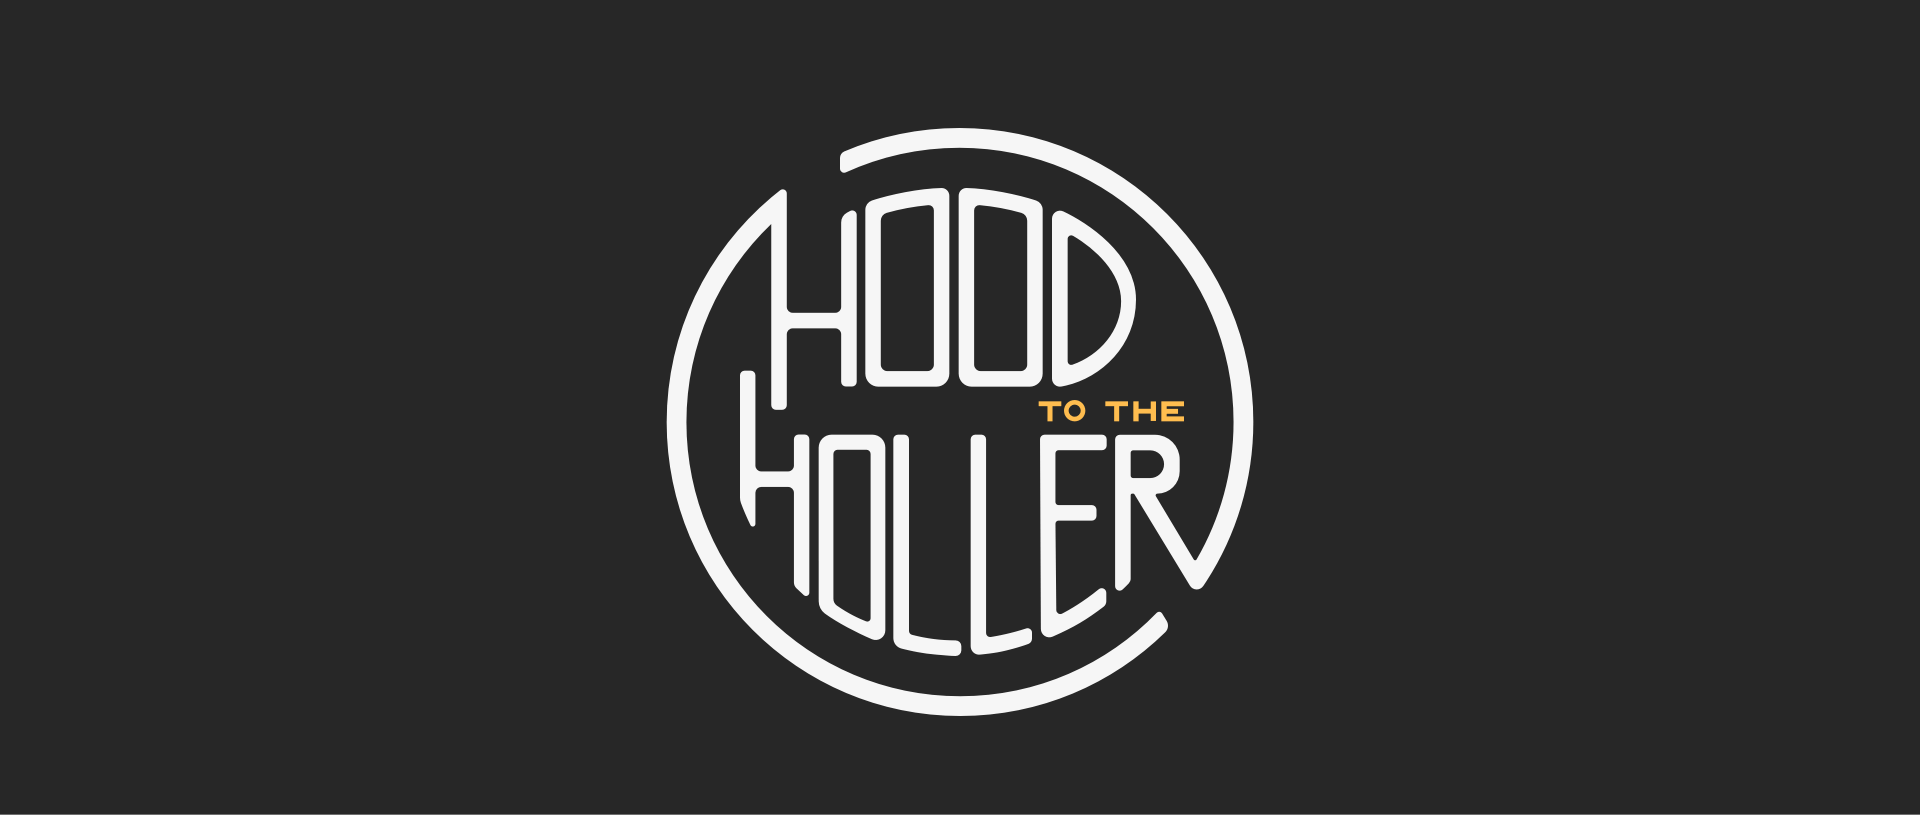 Hood to the Holler Logo